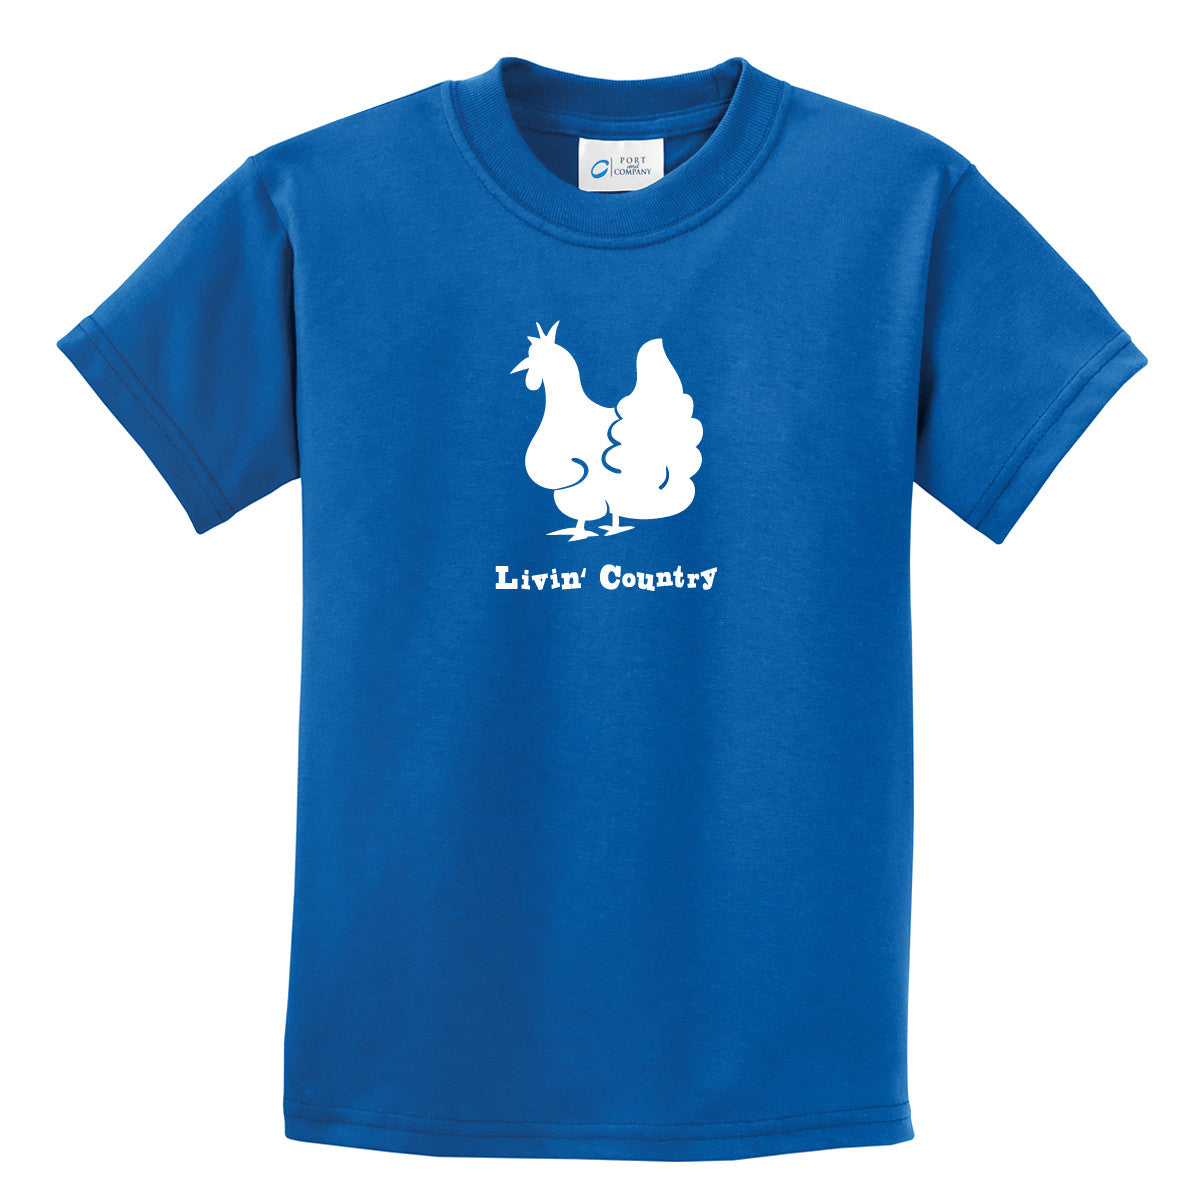 Kid's Livin' Country Chicken T-shirt - Livin' Country Apparel & Accessories  - 5